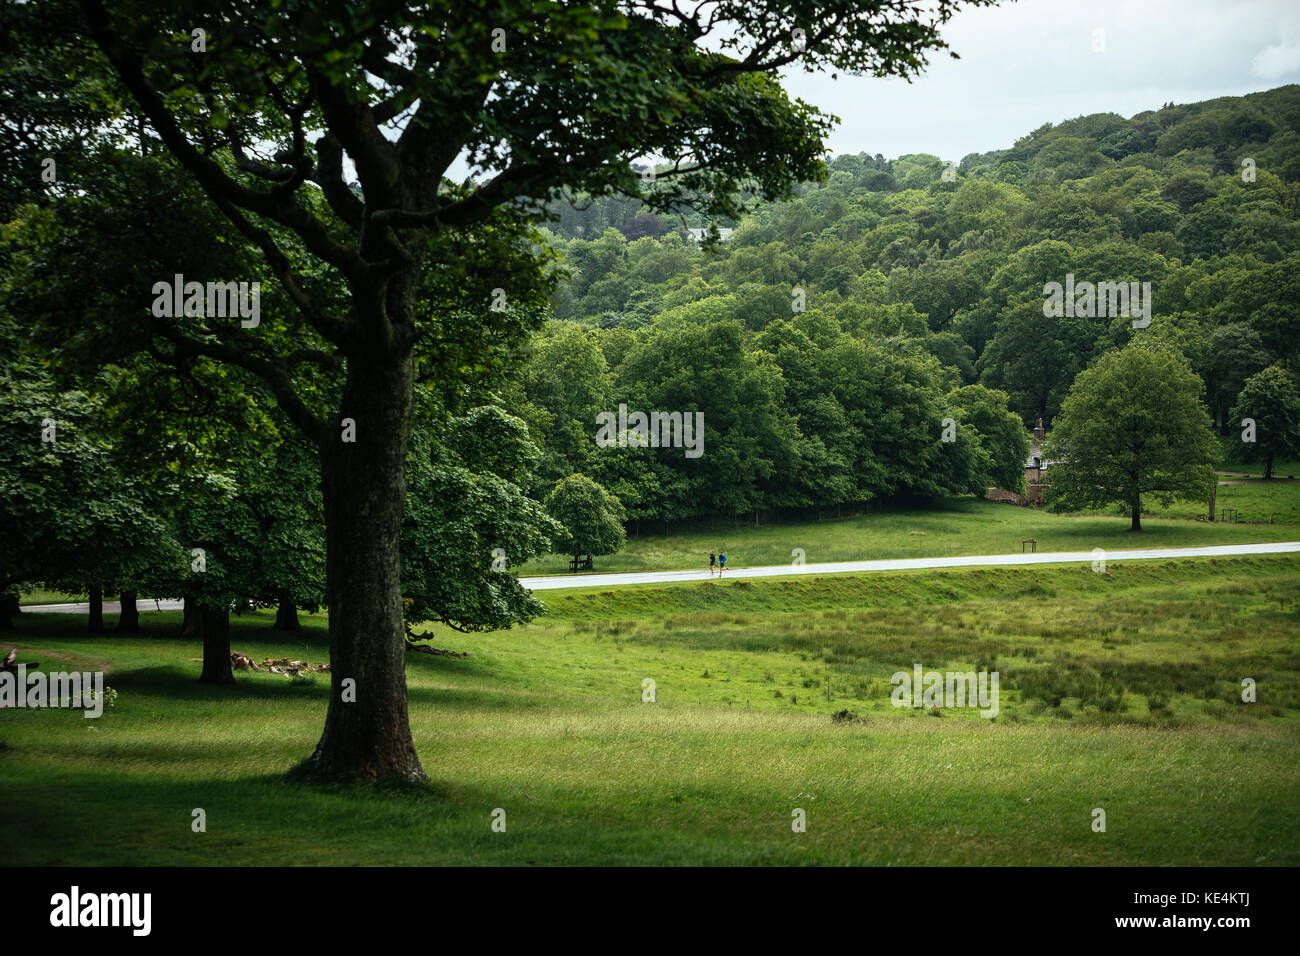 Athletes run through through trees in the British countryside. - Stock Image